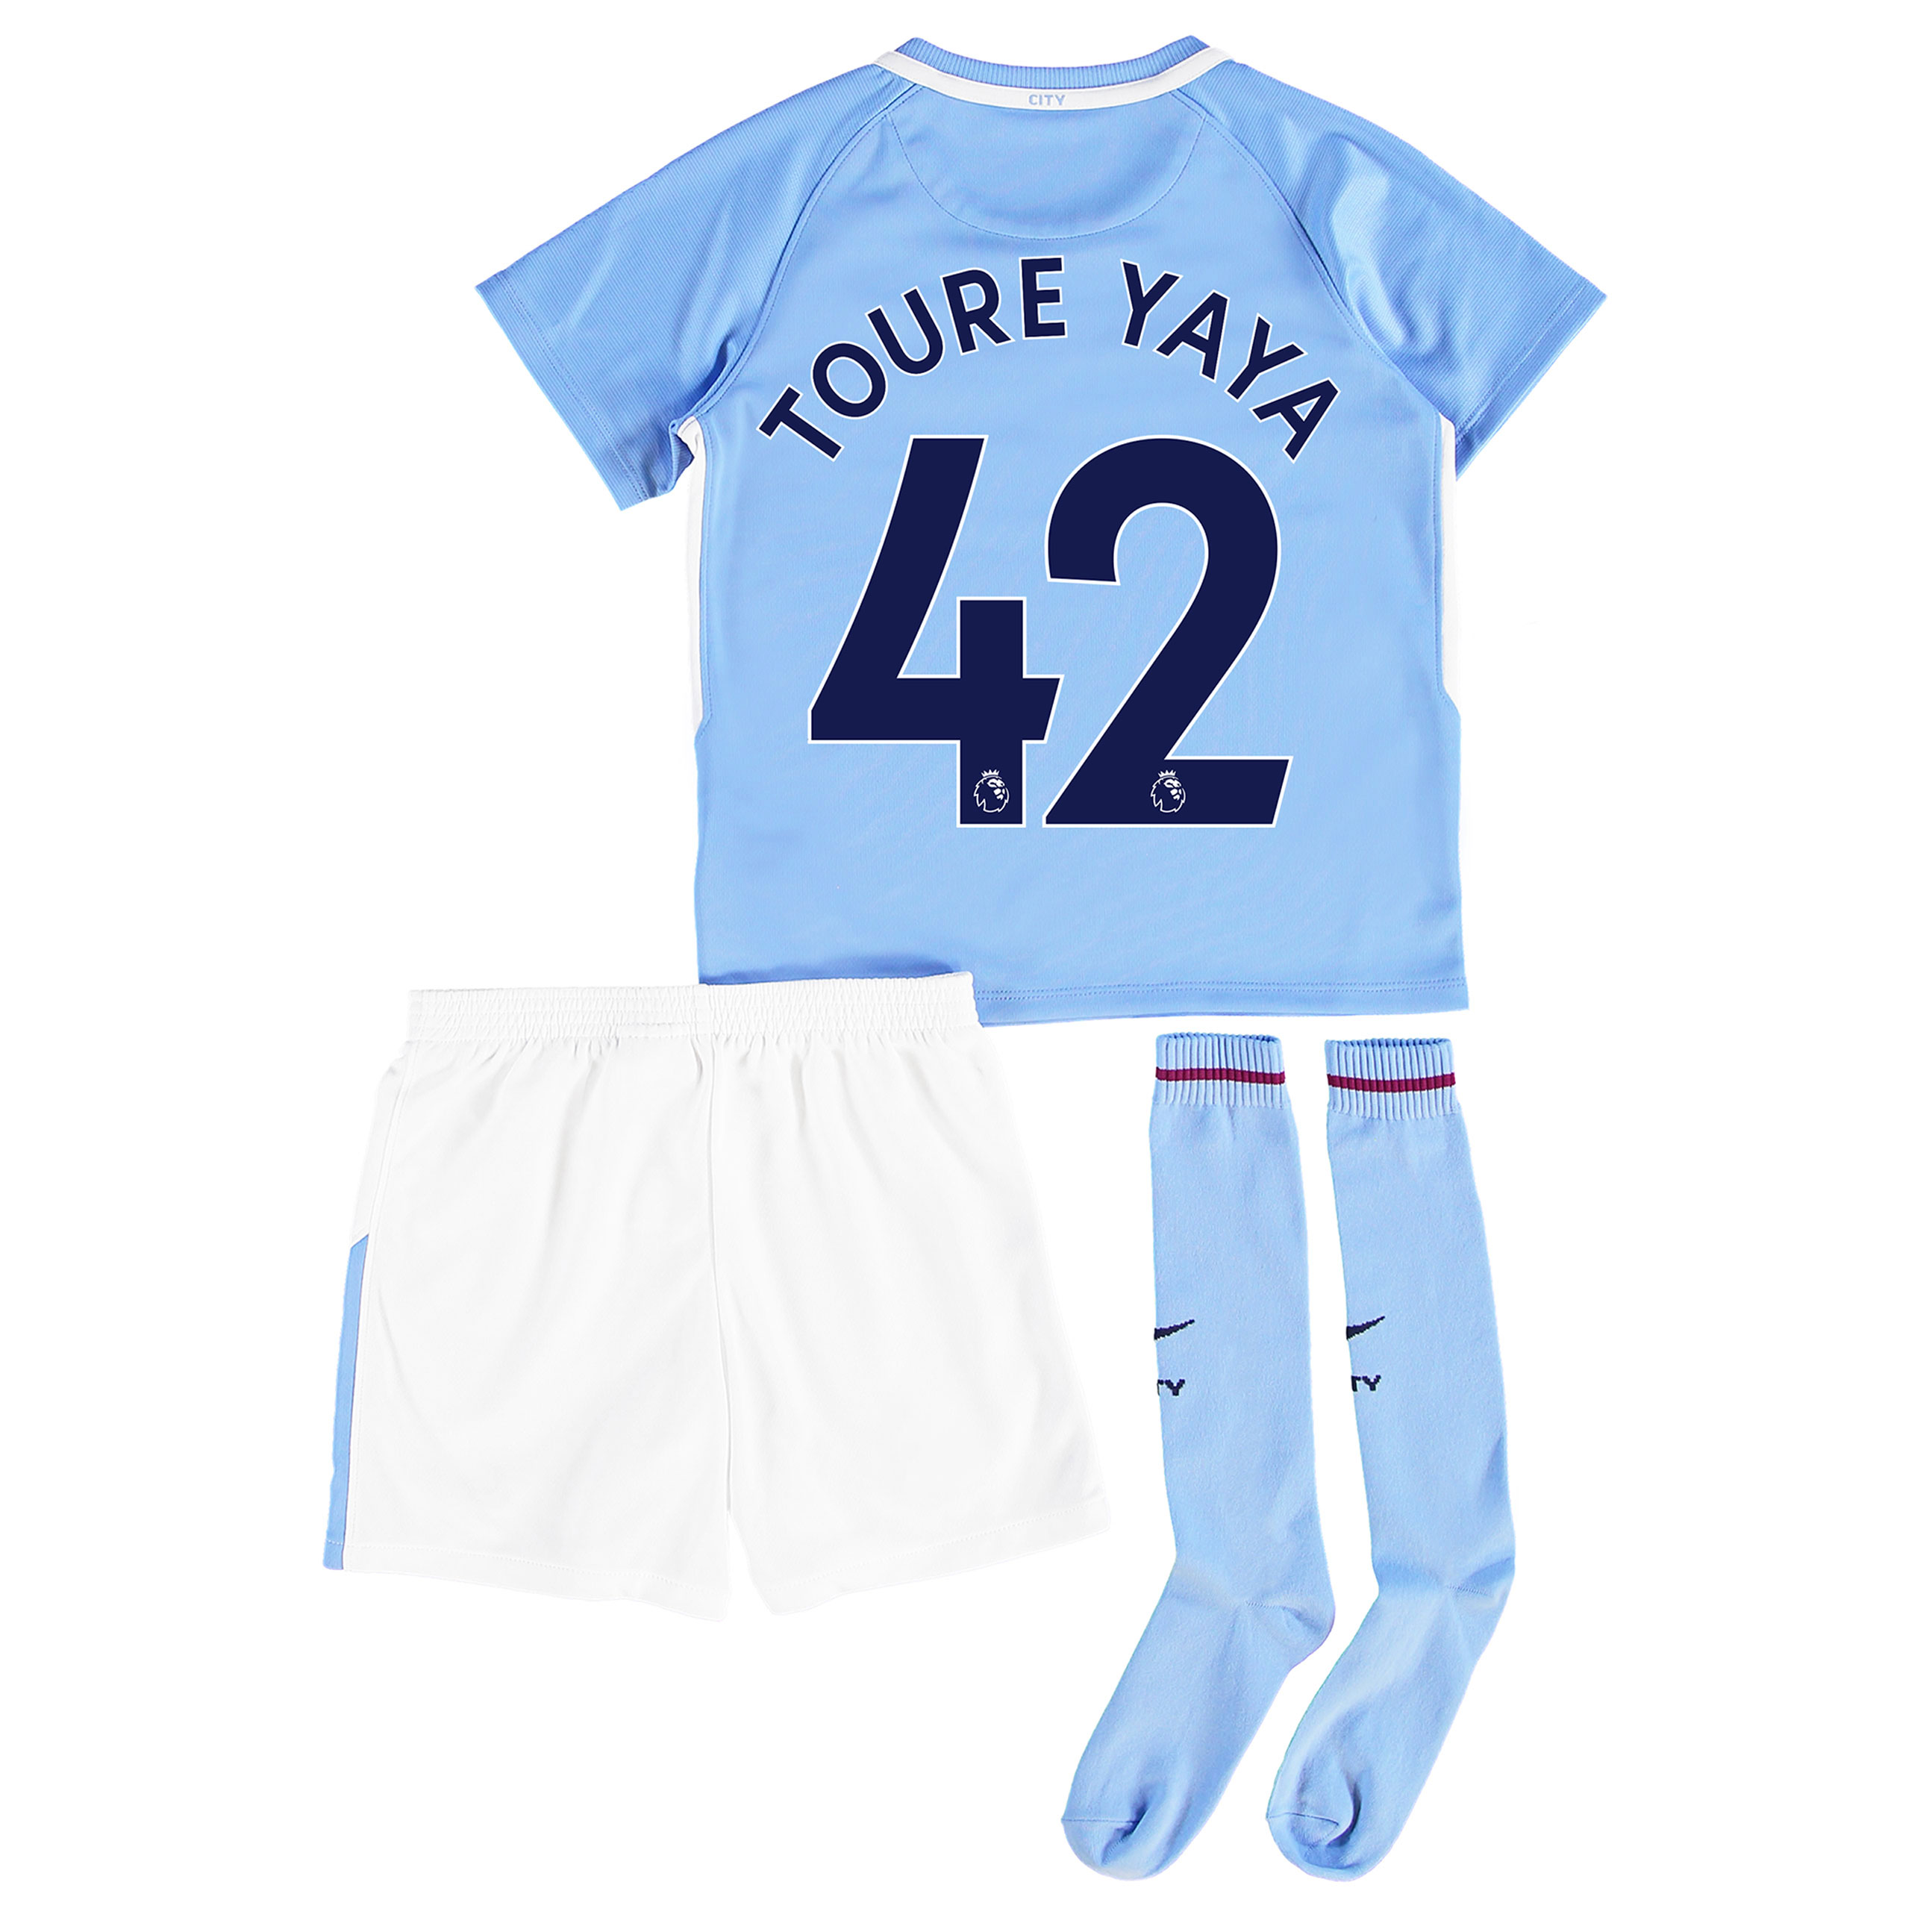 Manchester City Home Stadium Kit 2017-18 - Little Kids with Toure Yaya